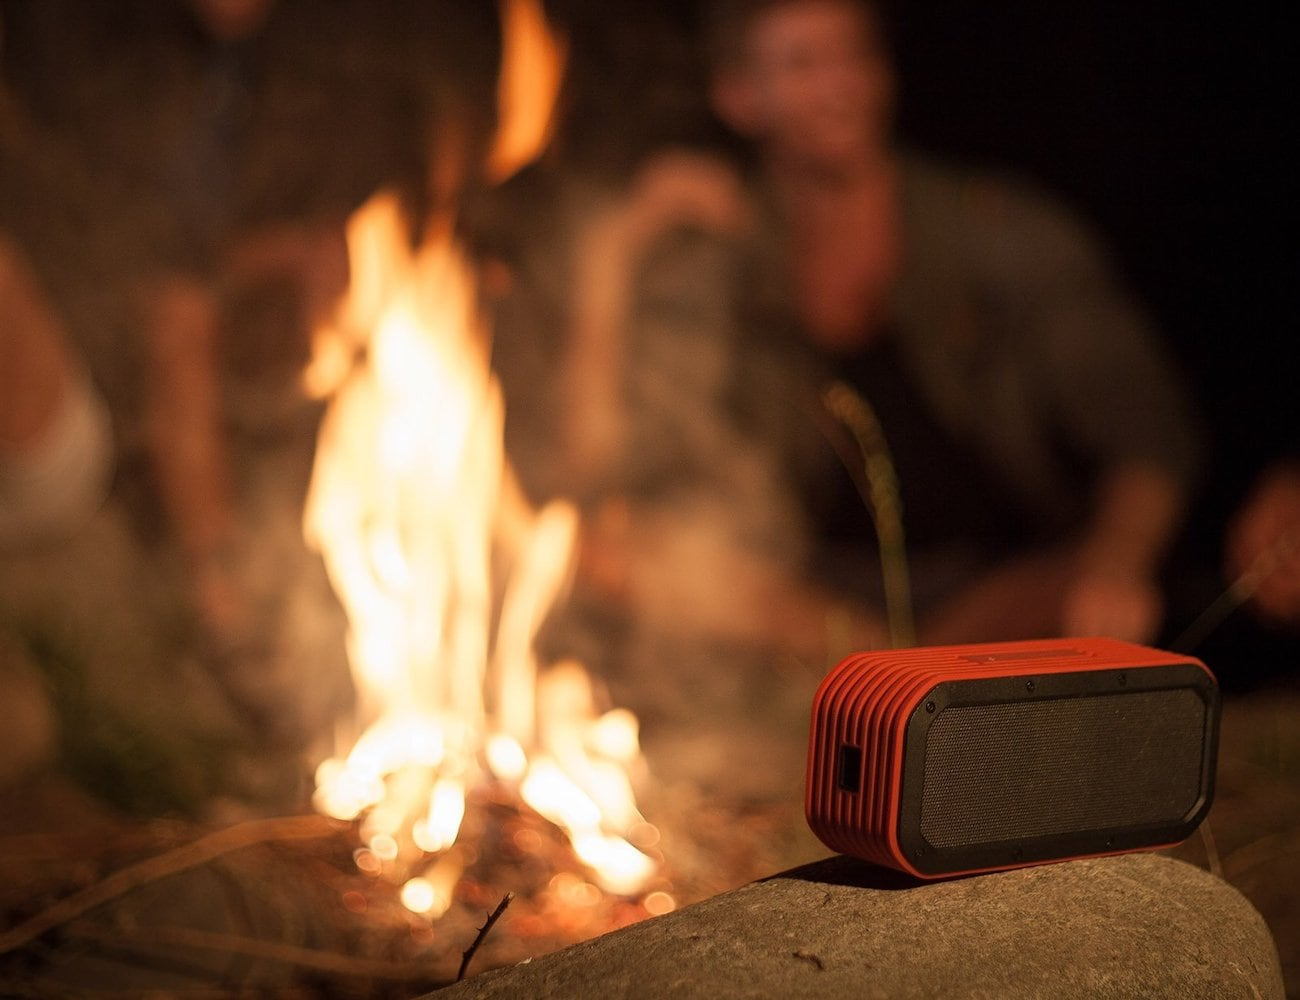 Divoom Voombox Power Premium Rugged Portable Speaker